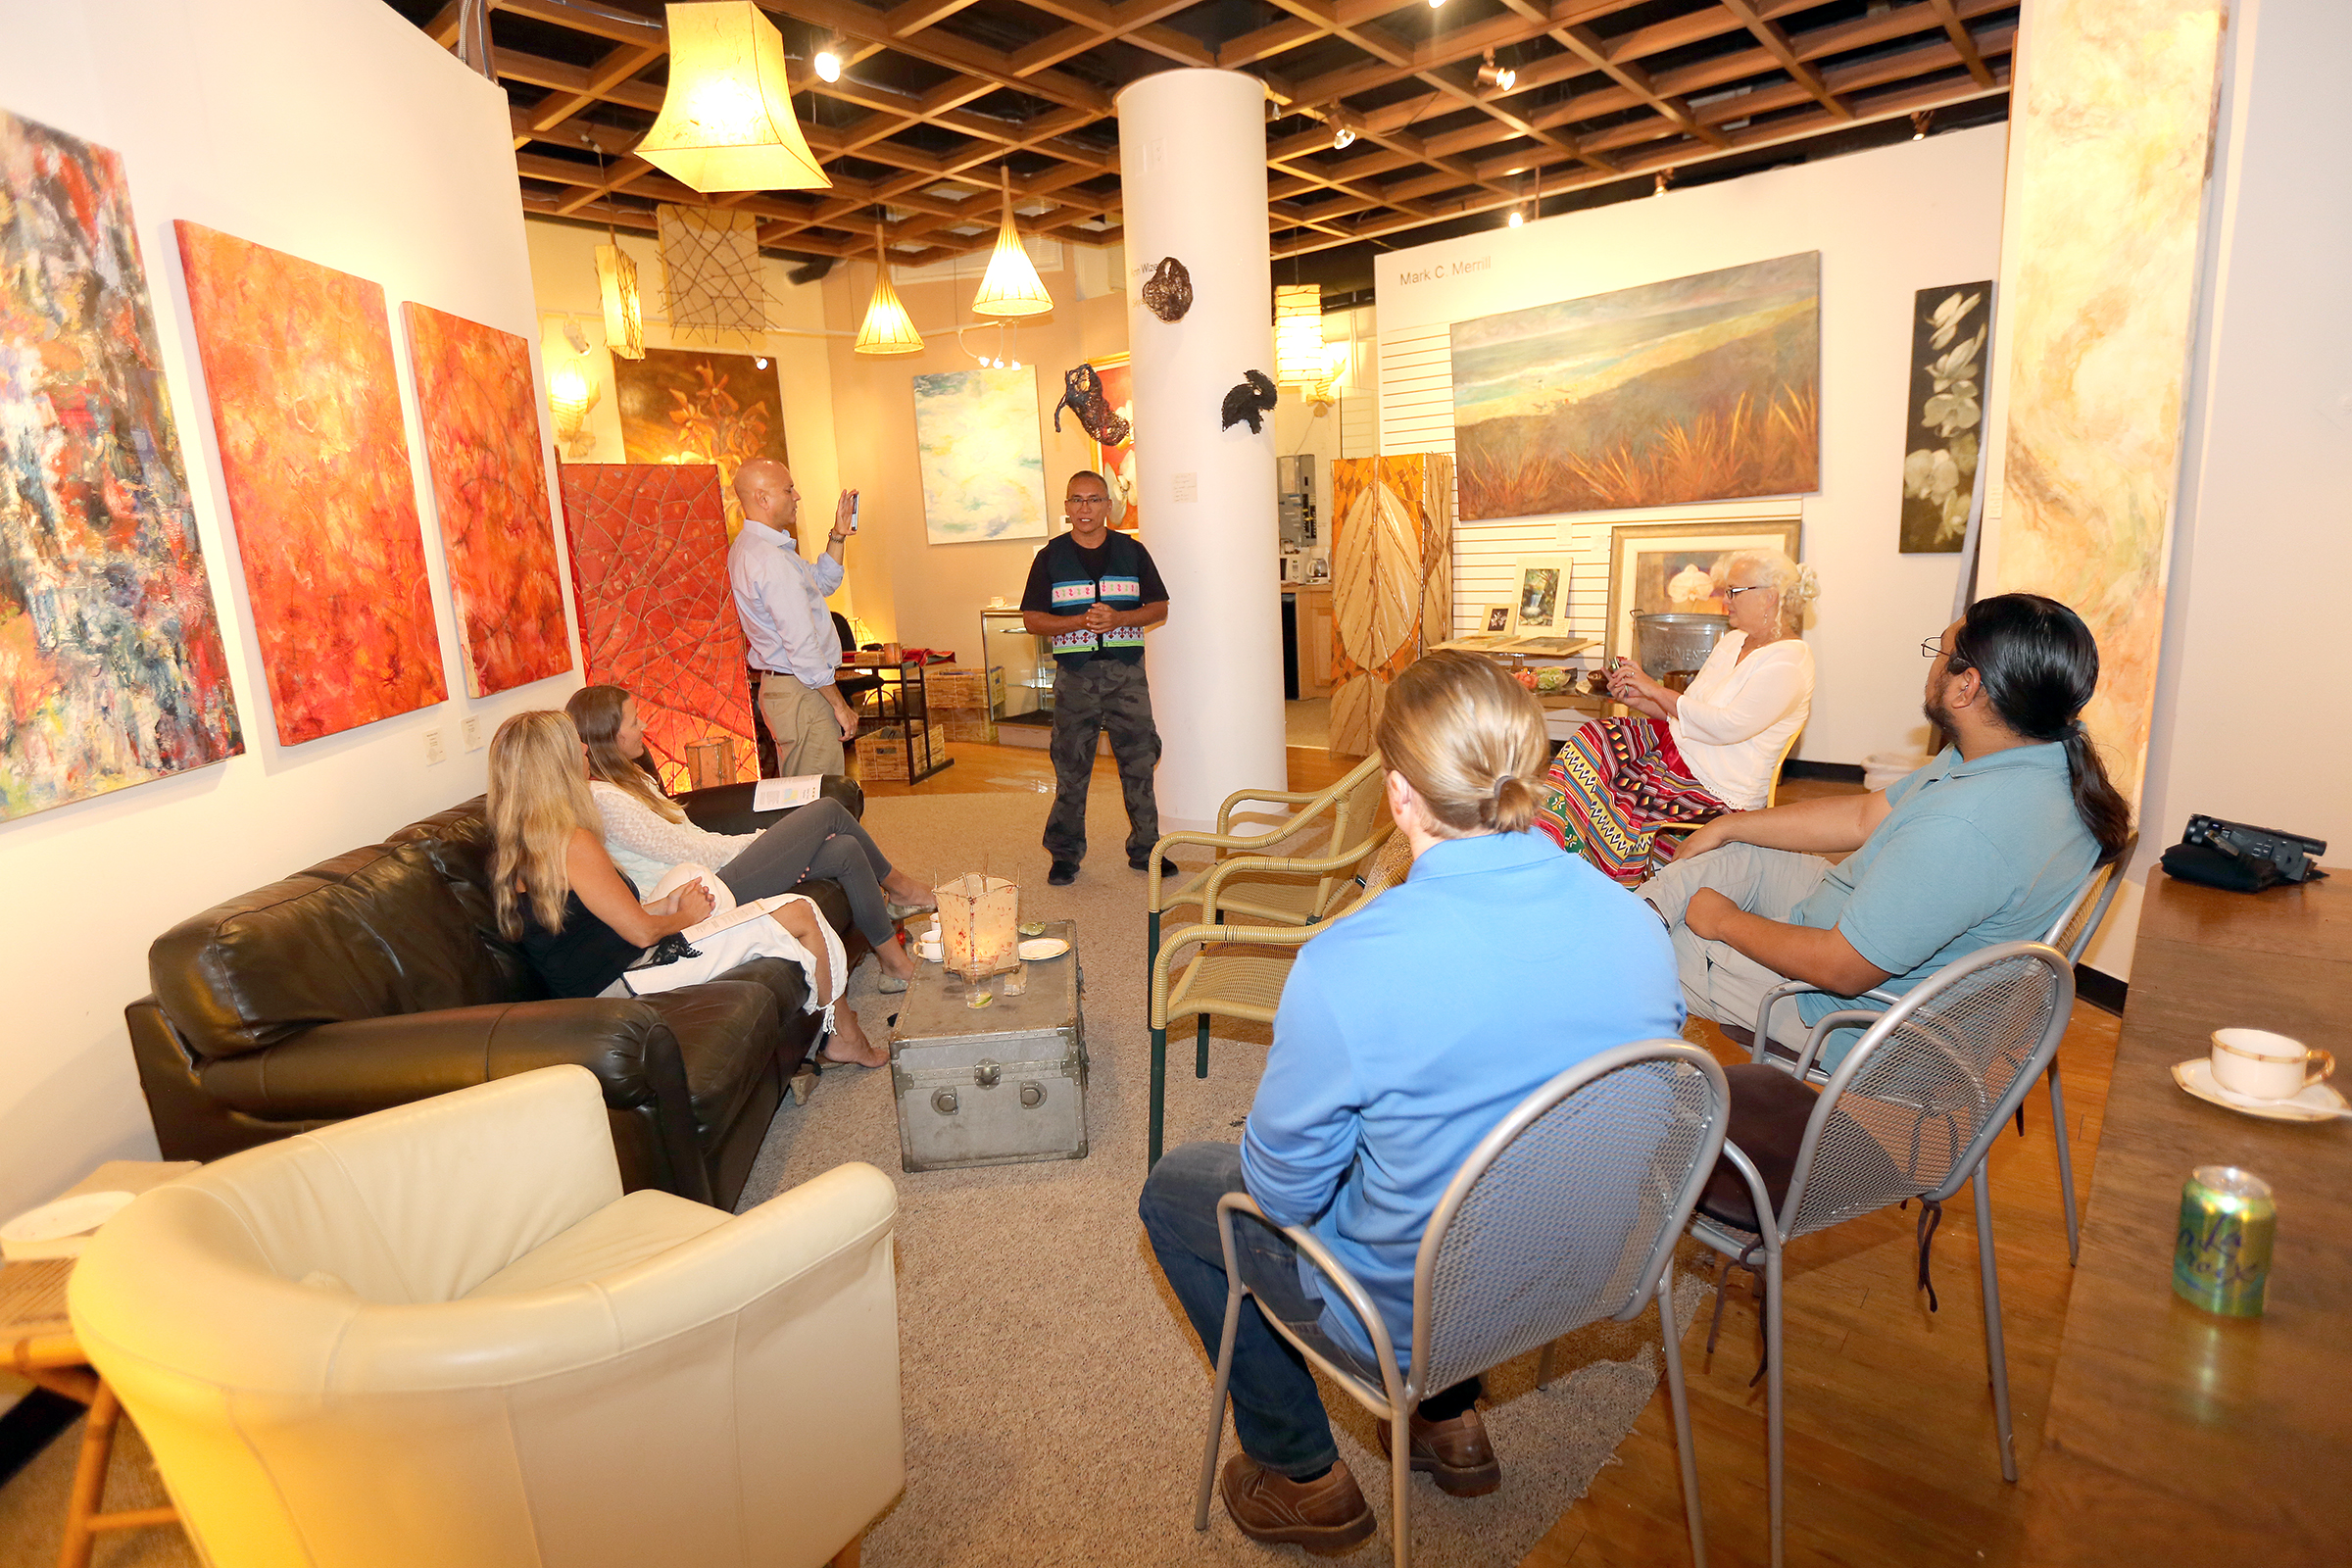 Sam Tommie, center, speaks about the importance of water Nov. 15 during a Native American Heritage Month program at the Upper Room Art Gallery in Fort Lauderdale. (Kevin Johnson photo)